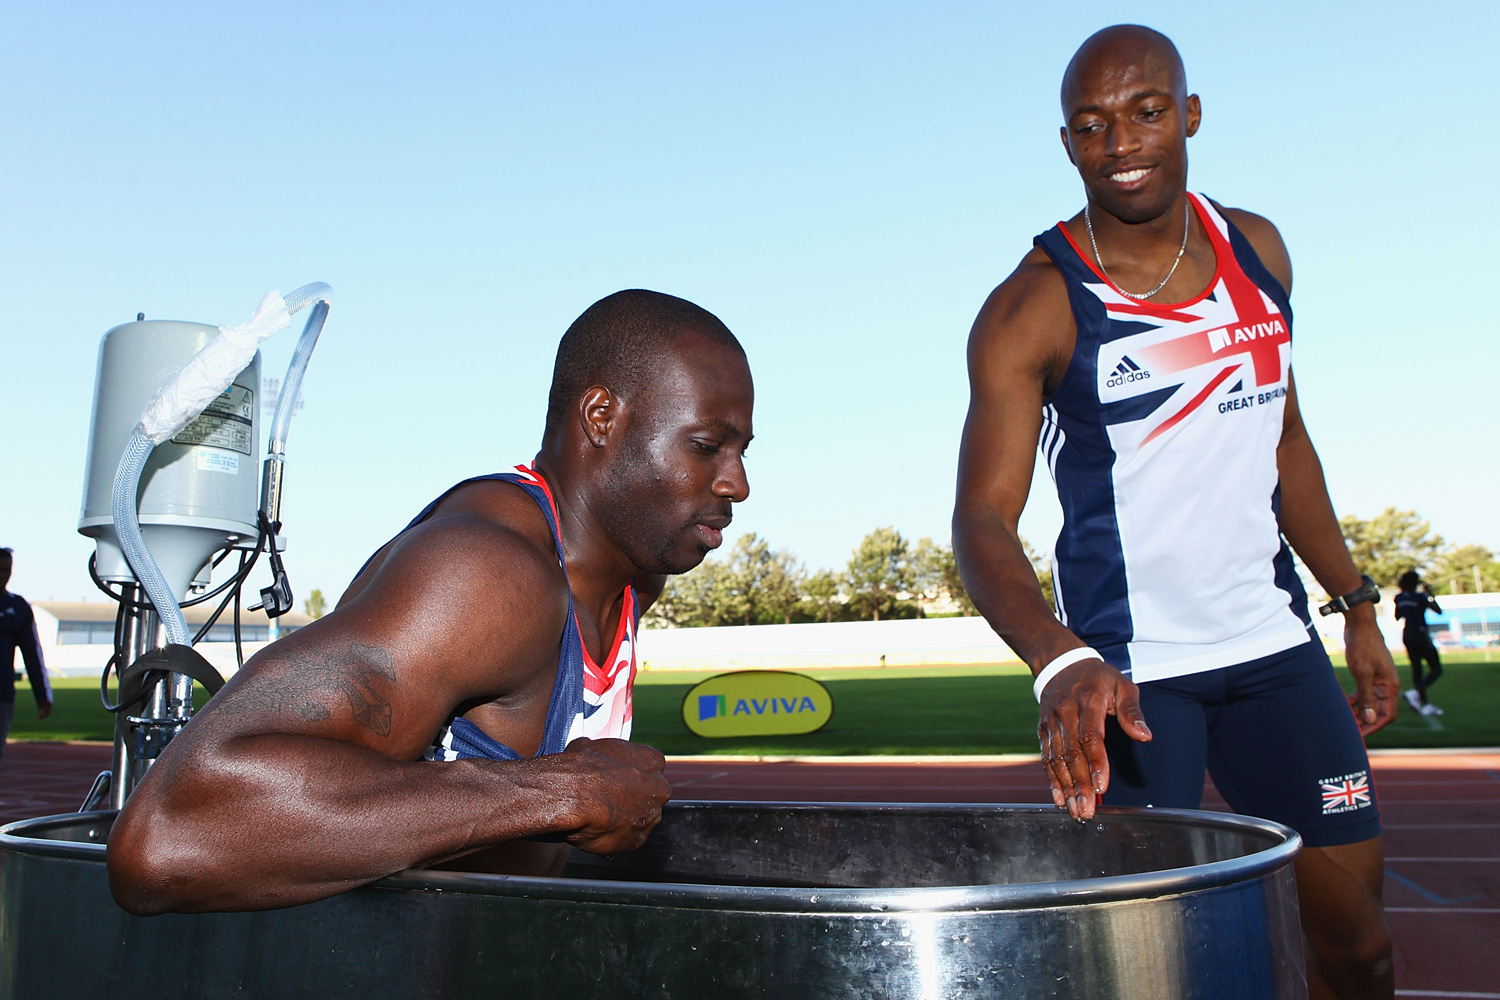 Tyrone Edgar (R) looks on as his teammate Marlon Devonish (L) dips into an ice bath during a training session at the Aviva GB & NI Team Preparation Camp.